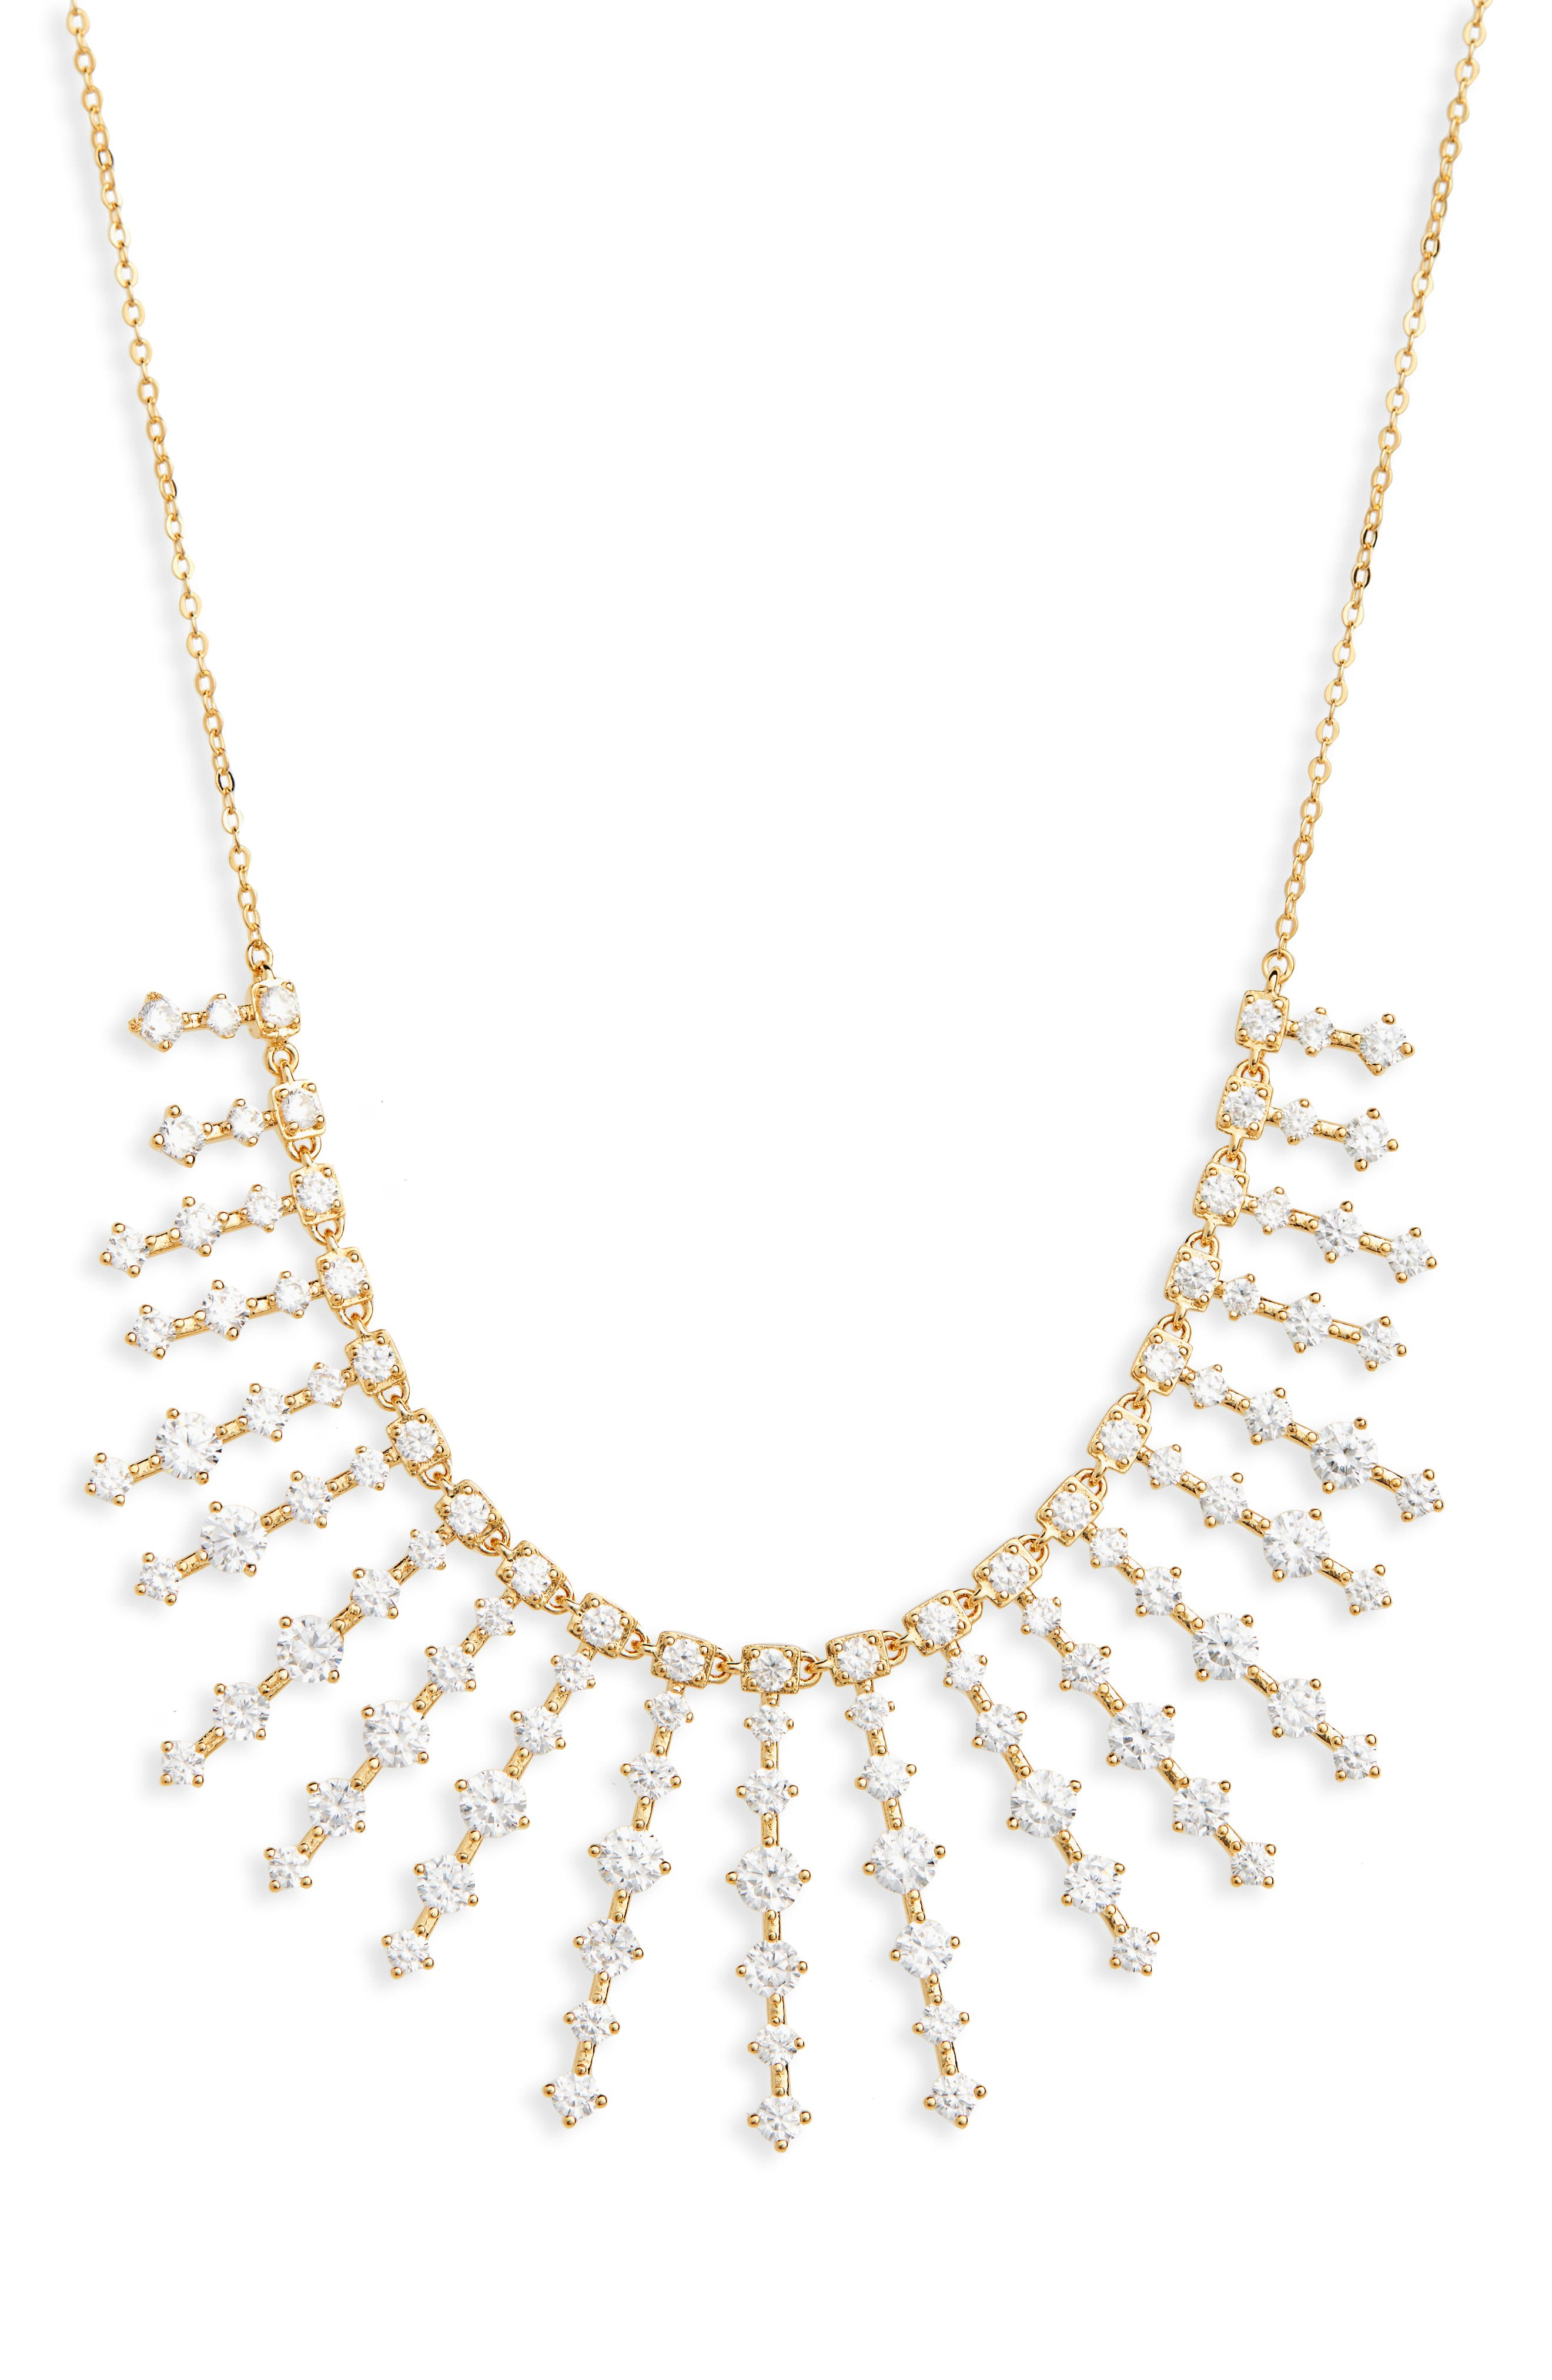 NORDSTROM,                             Stone Bar Bib Statement Necklace,                             Main thumbnail 1, color,                             CLEAR- GOLD